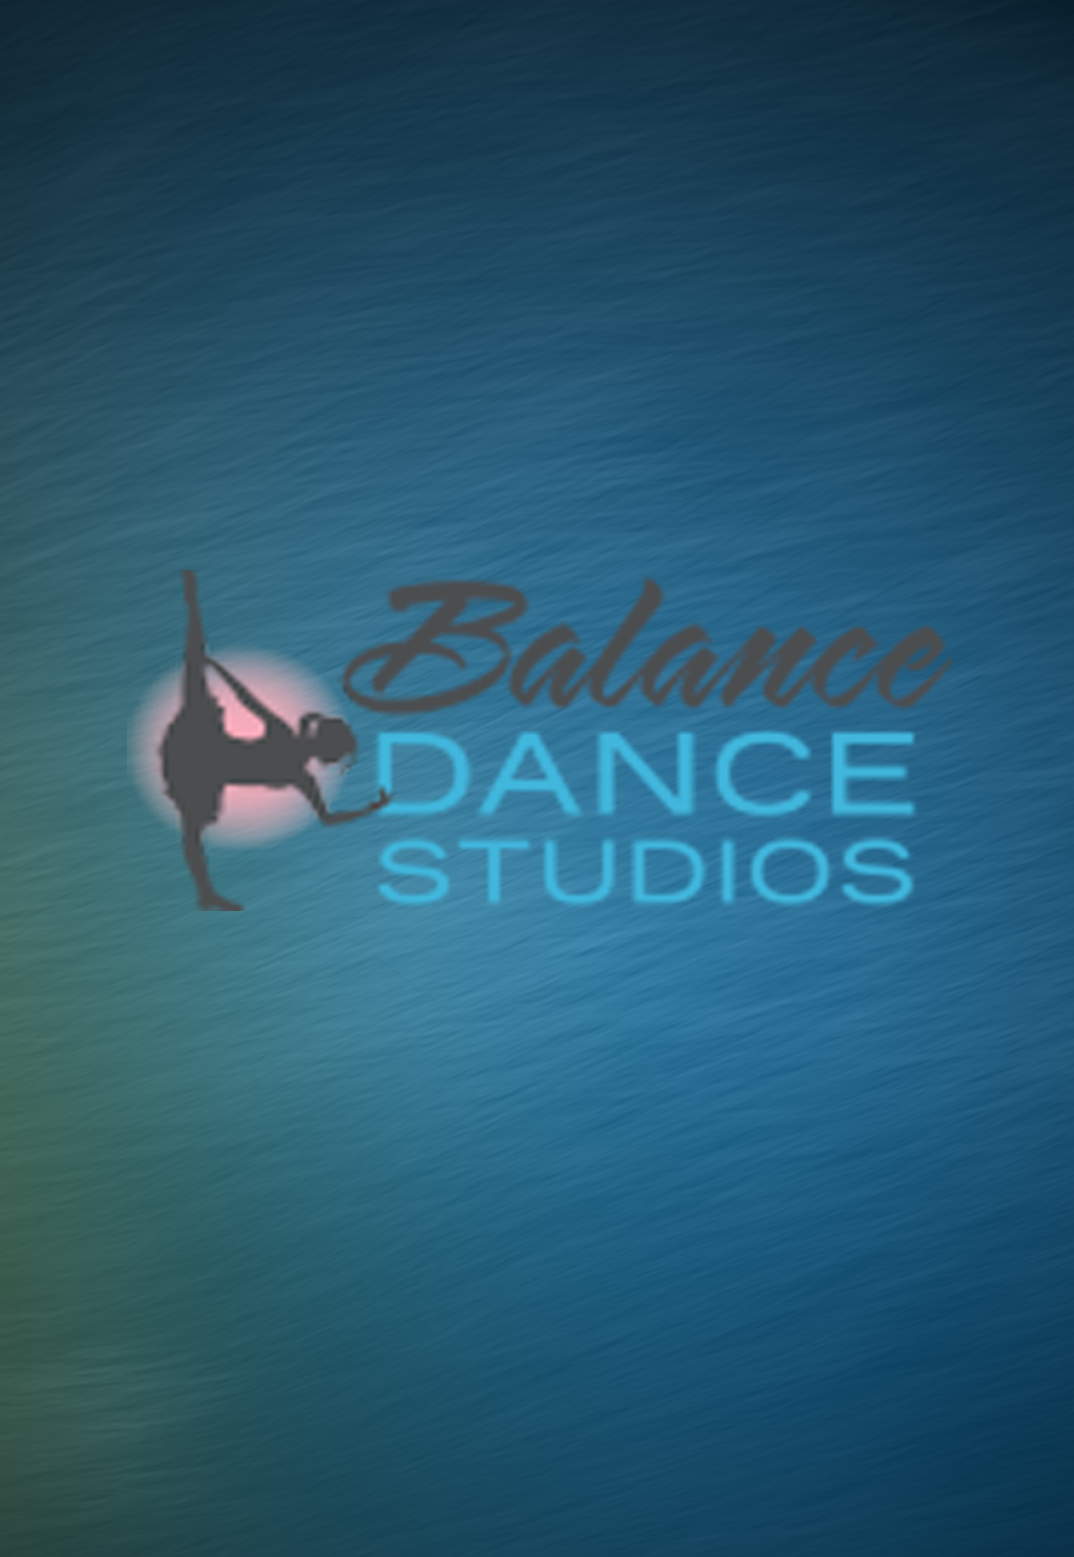 BALANCE DANCE STUDIO MAY 14, 2016 ANIMAL KINGDOM RECITAL